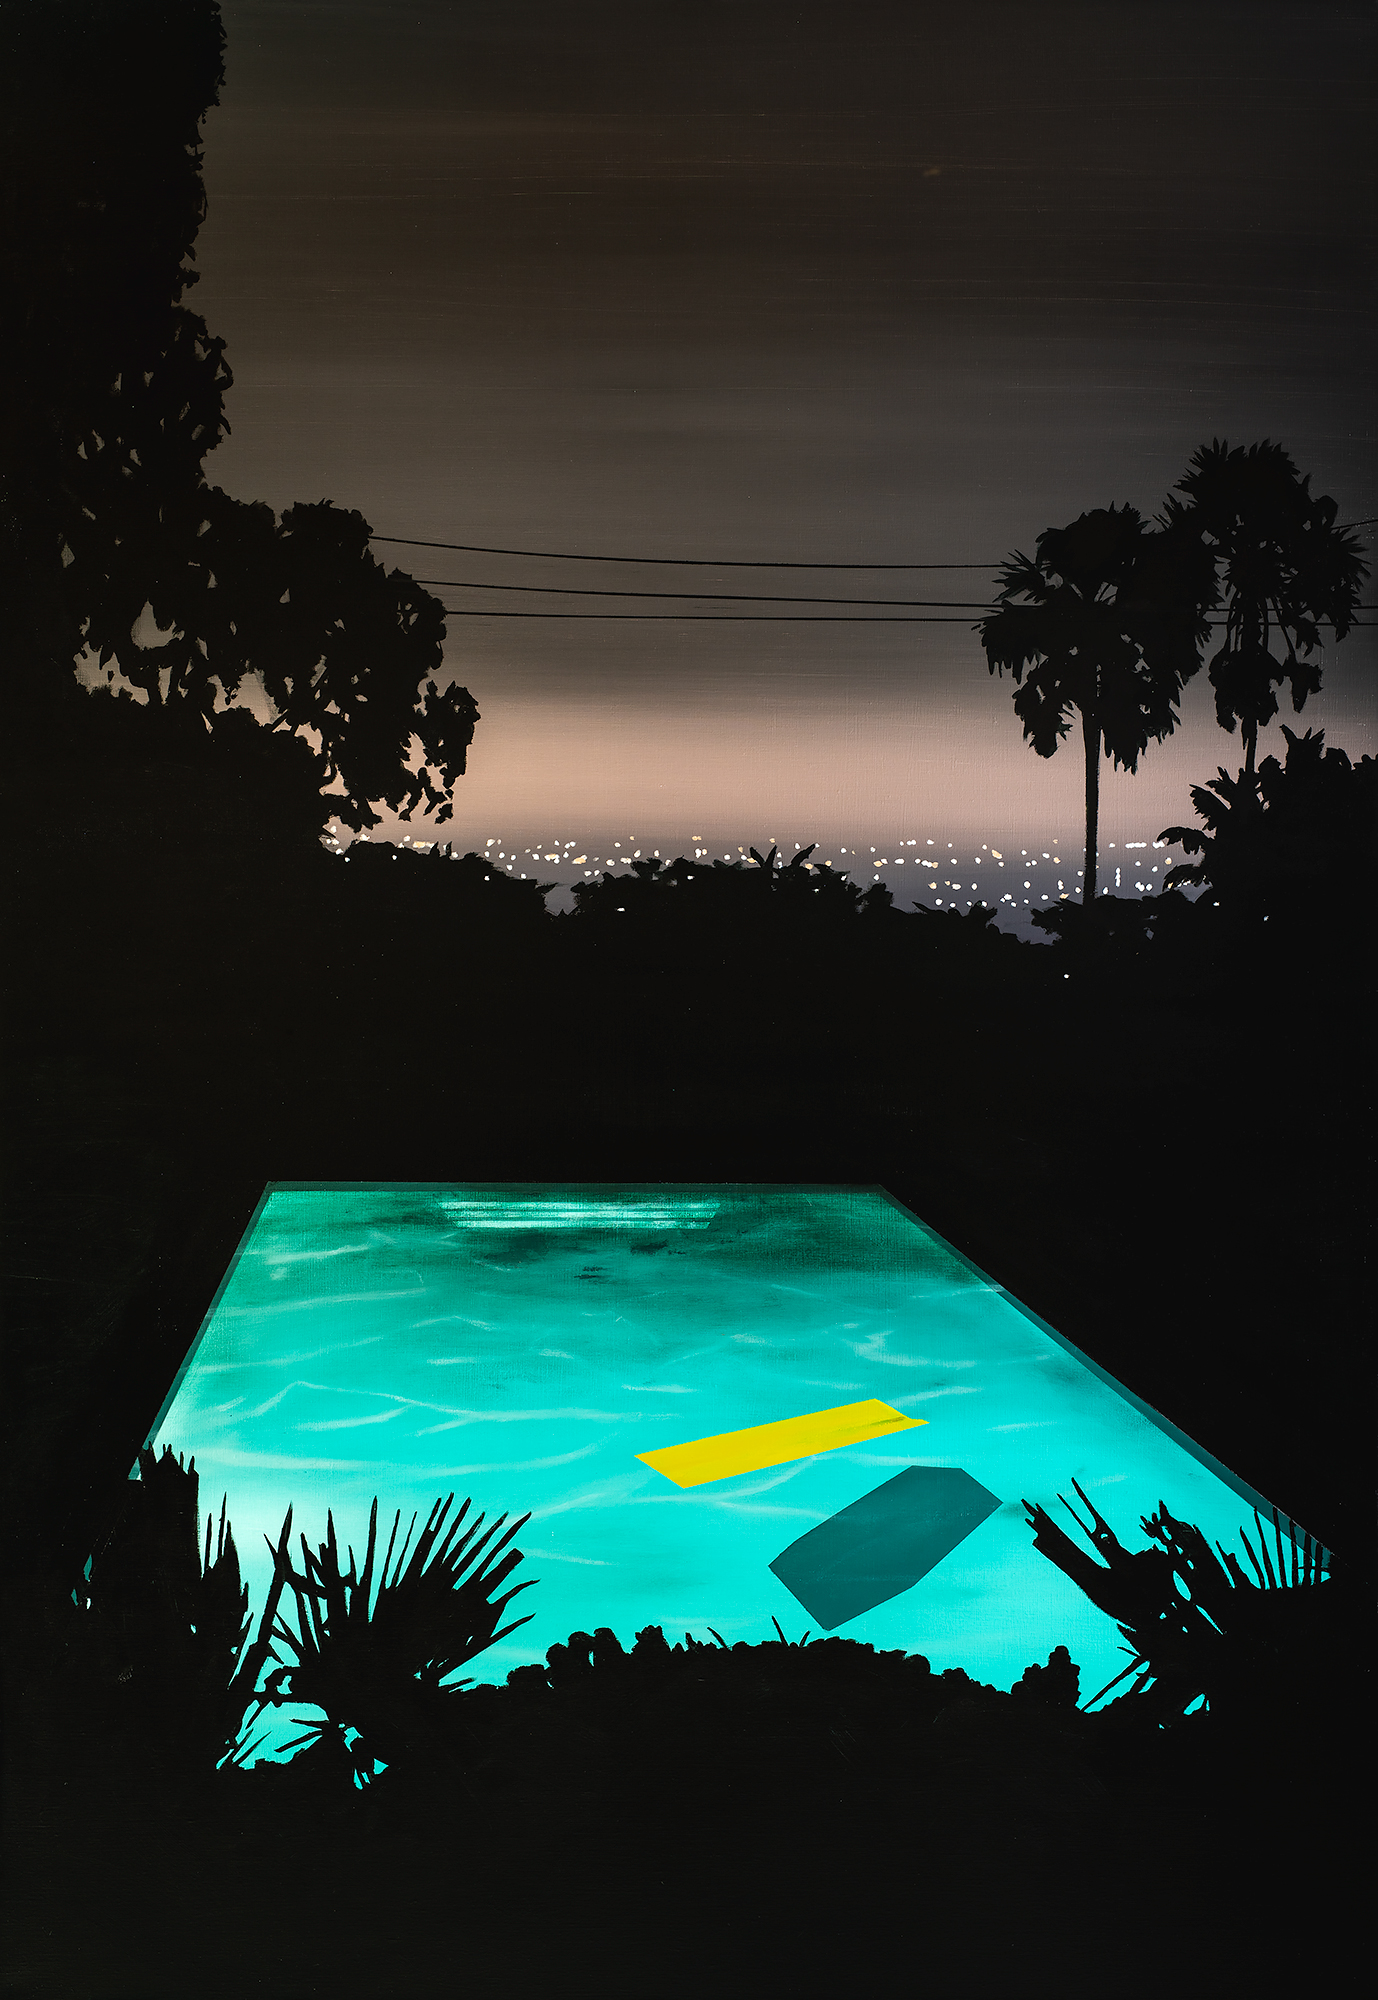 'Pool with Yellow Float, 110 x 160cm, Acrylic and Acrylic Ink on Linen, 2019-2000px.jpg